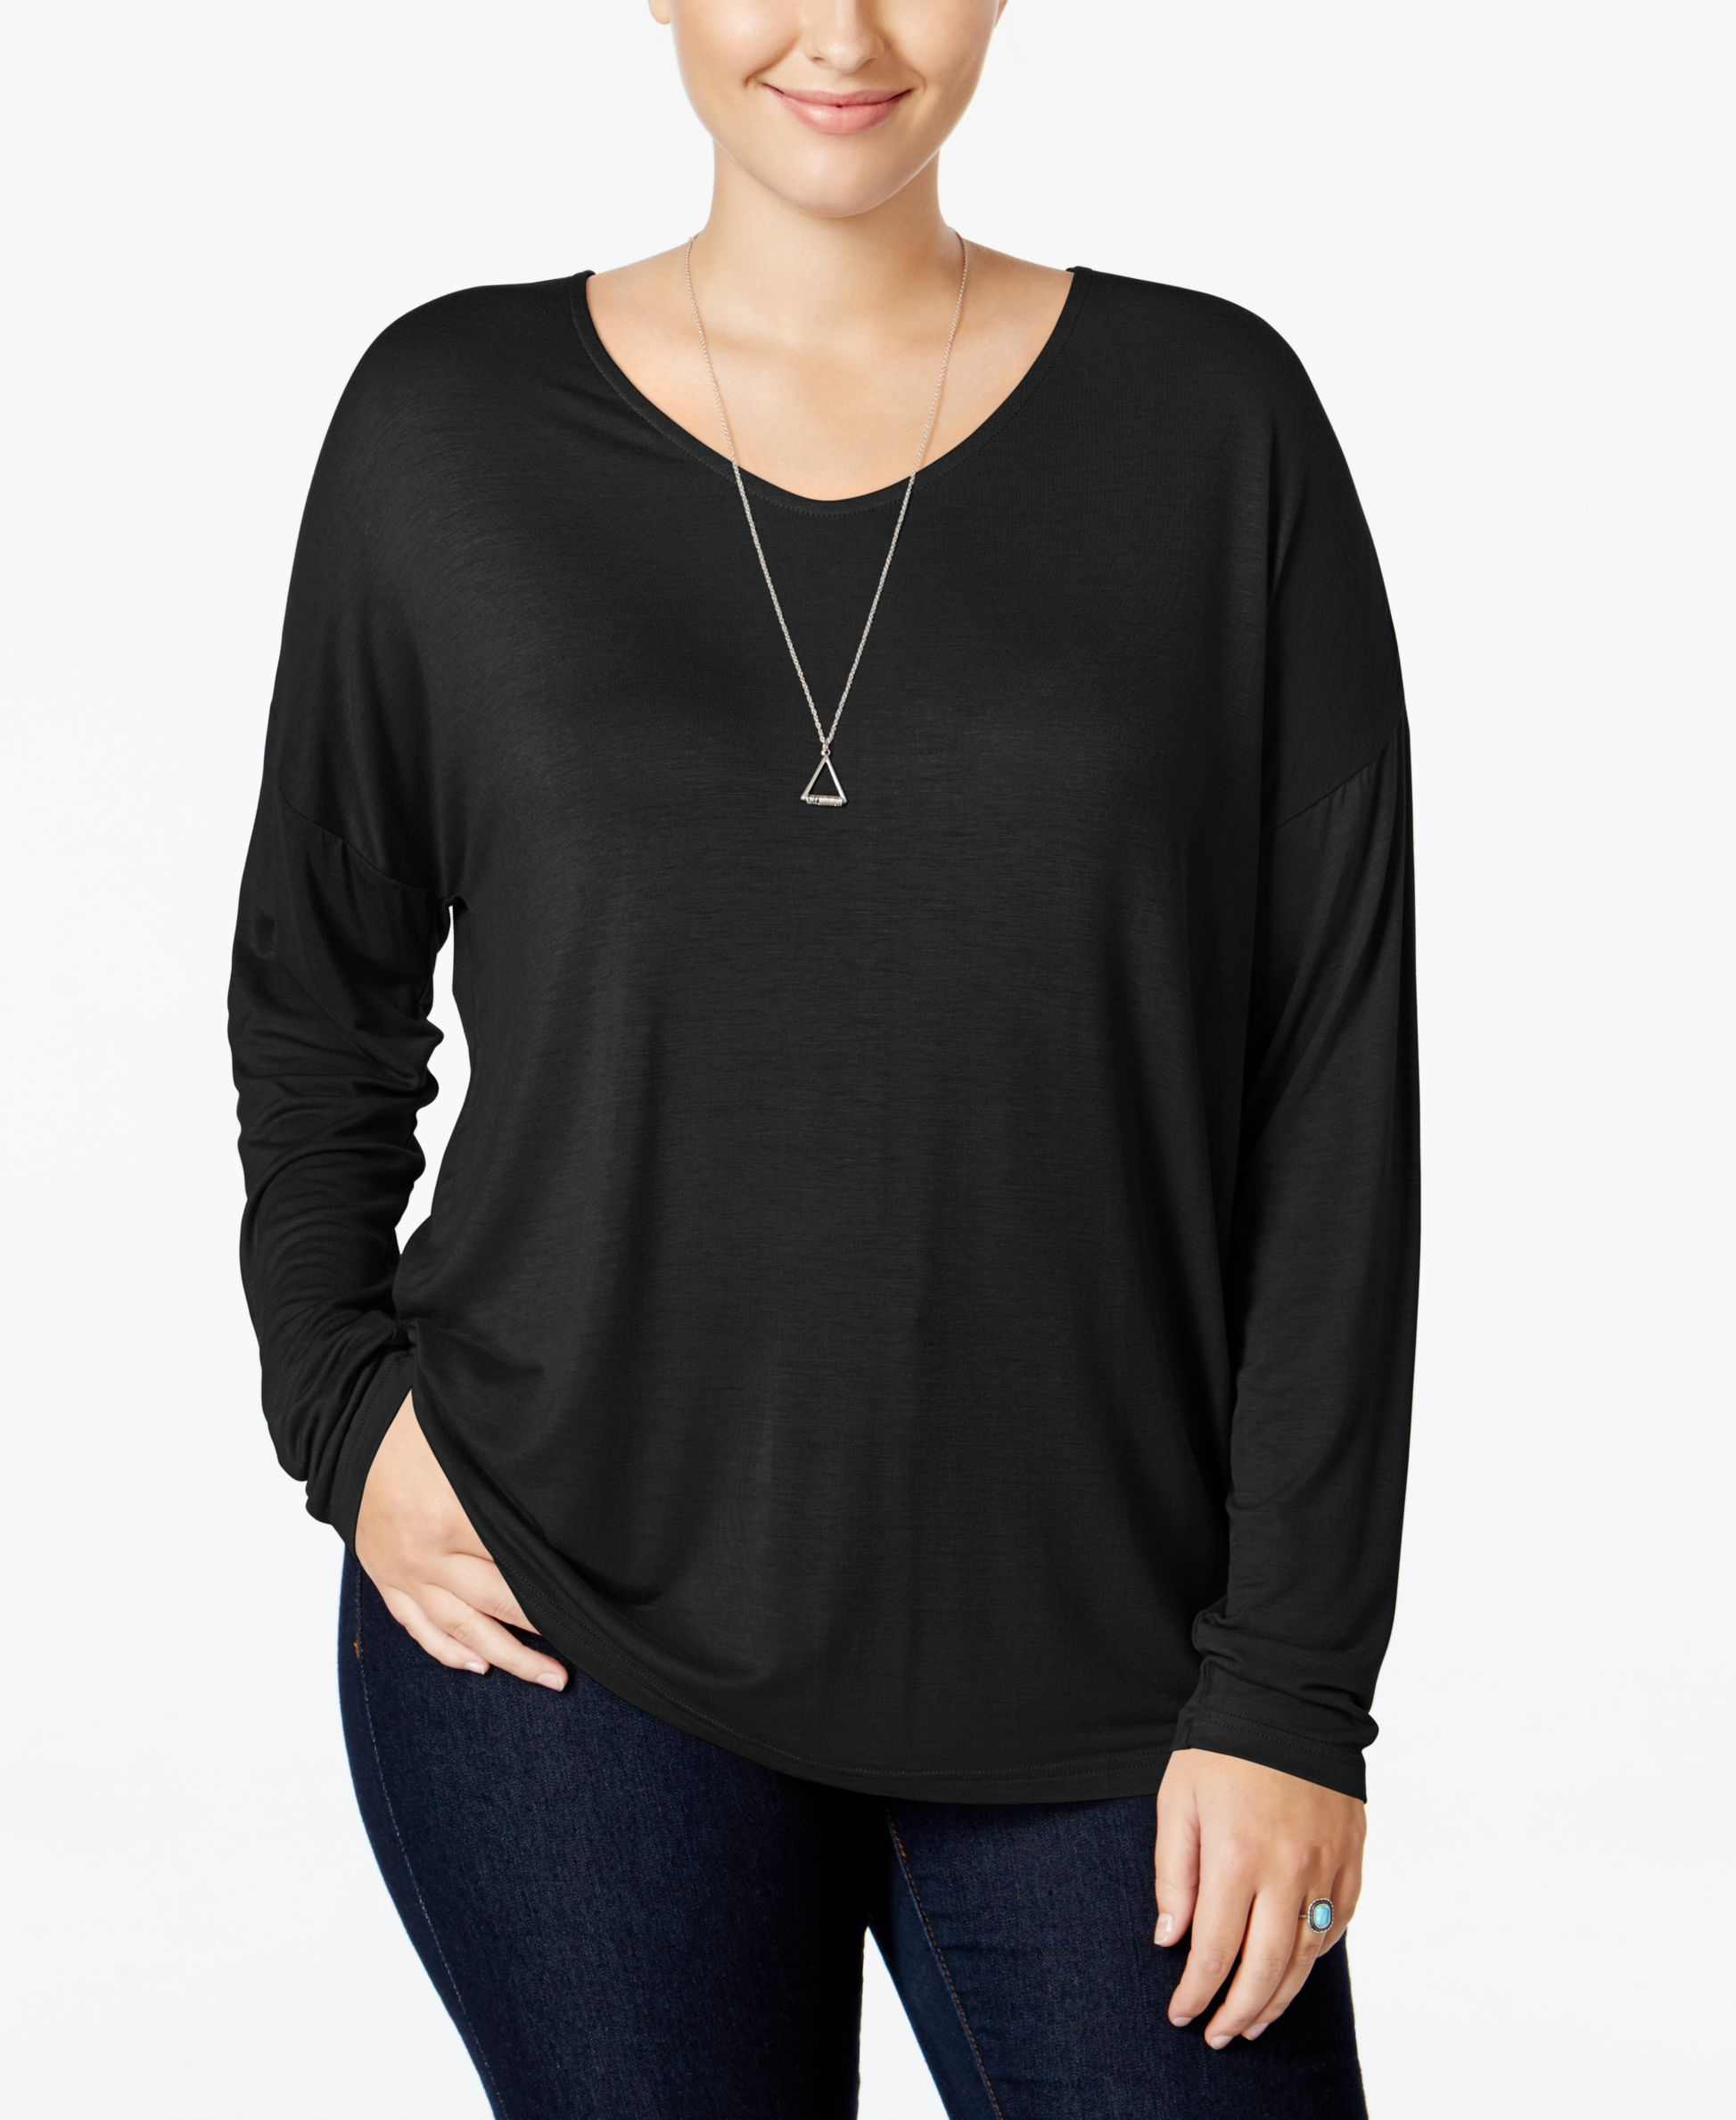 Extra Touch Trendy Plus Size Strappy-Back Top